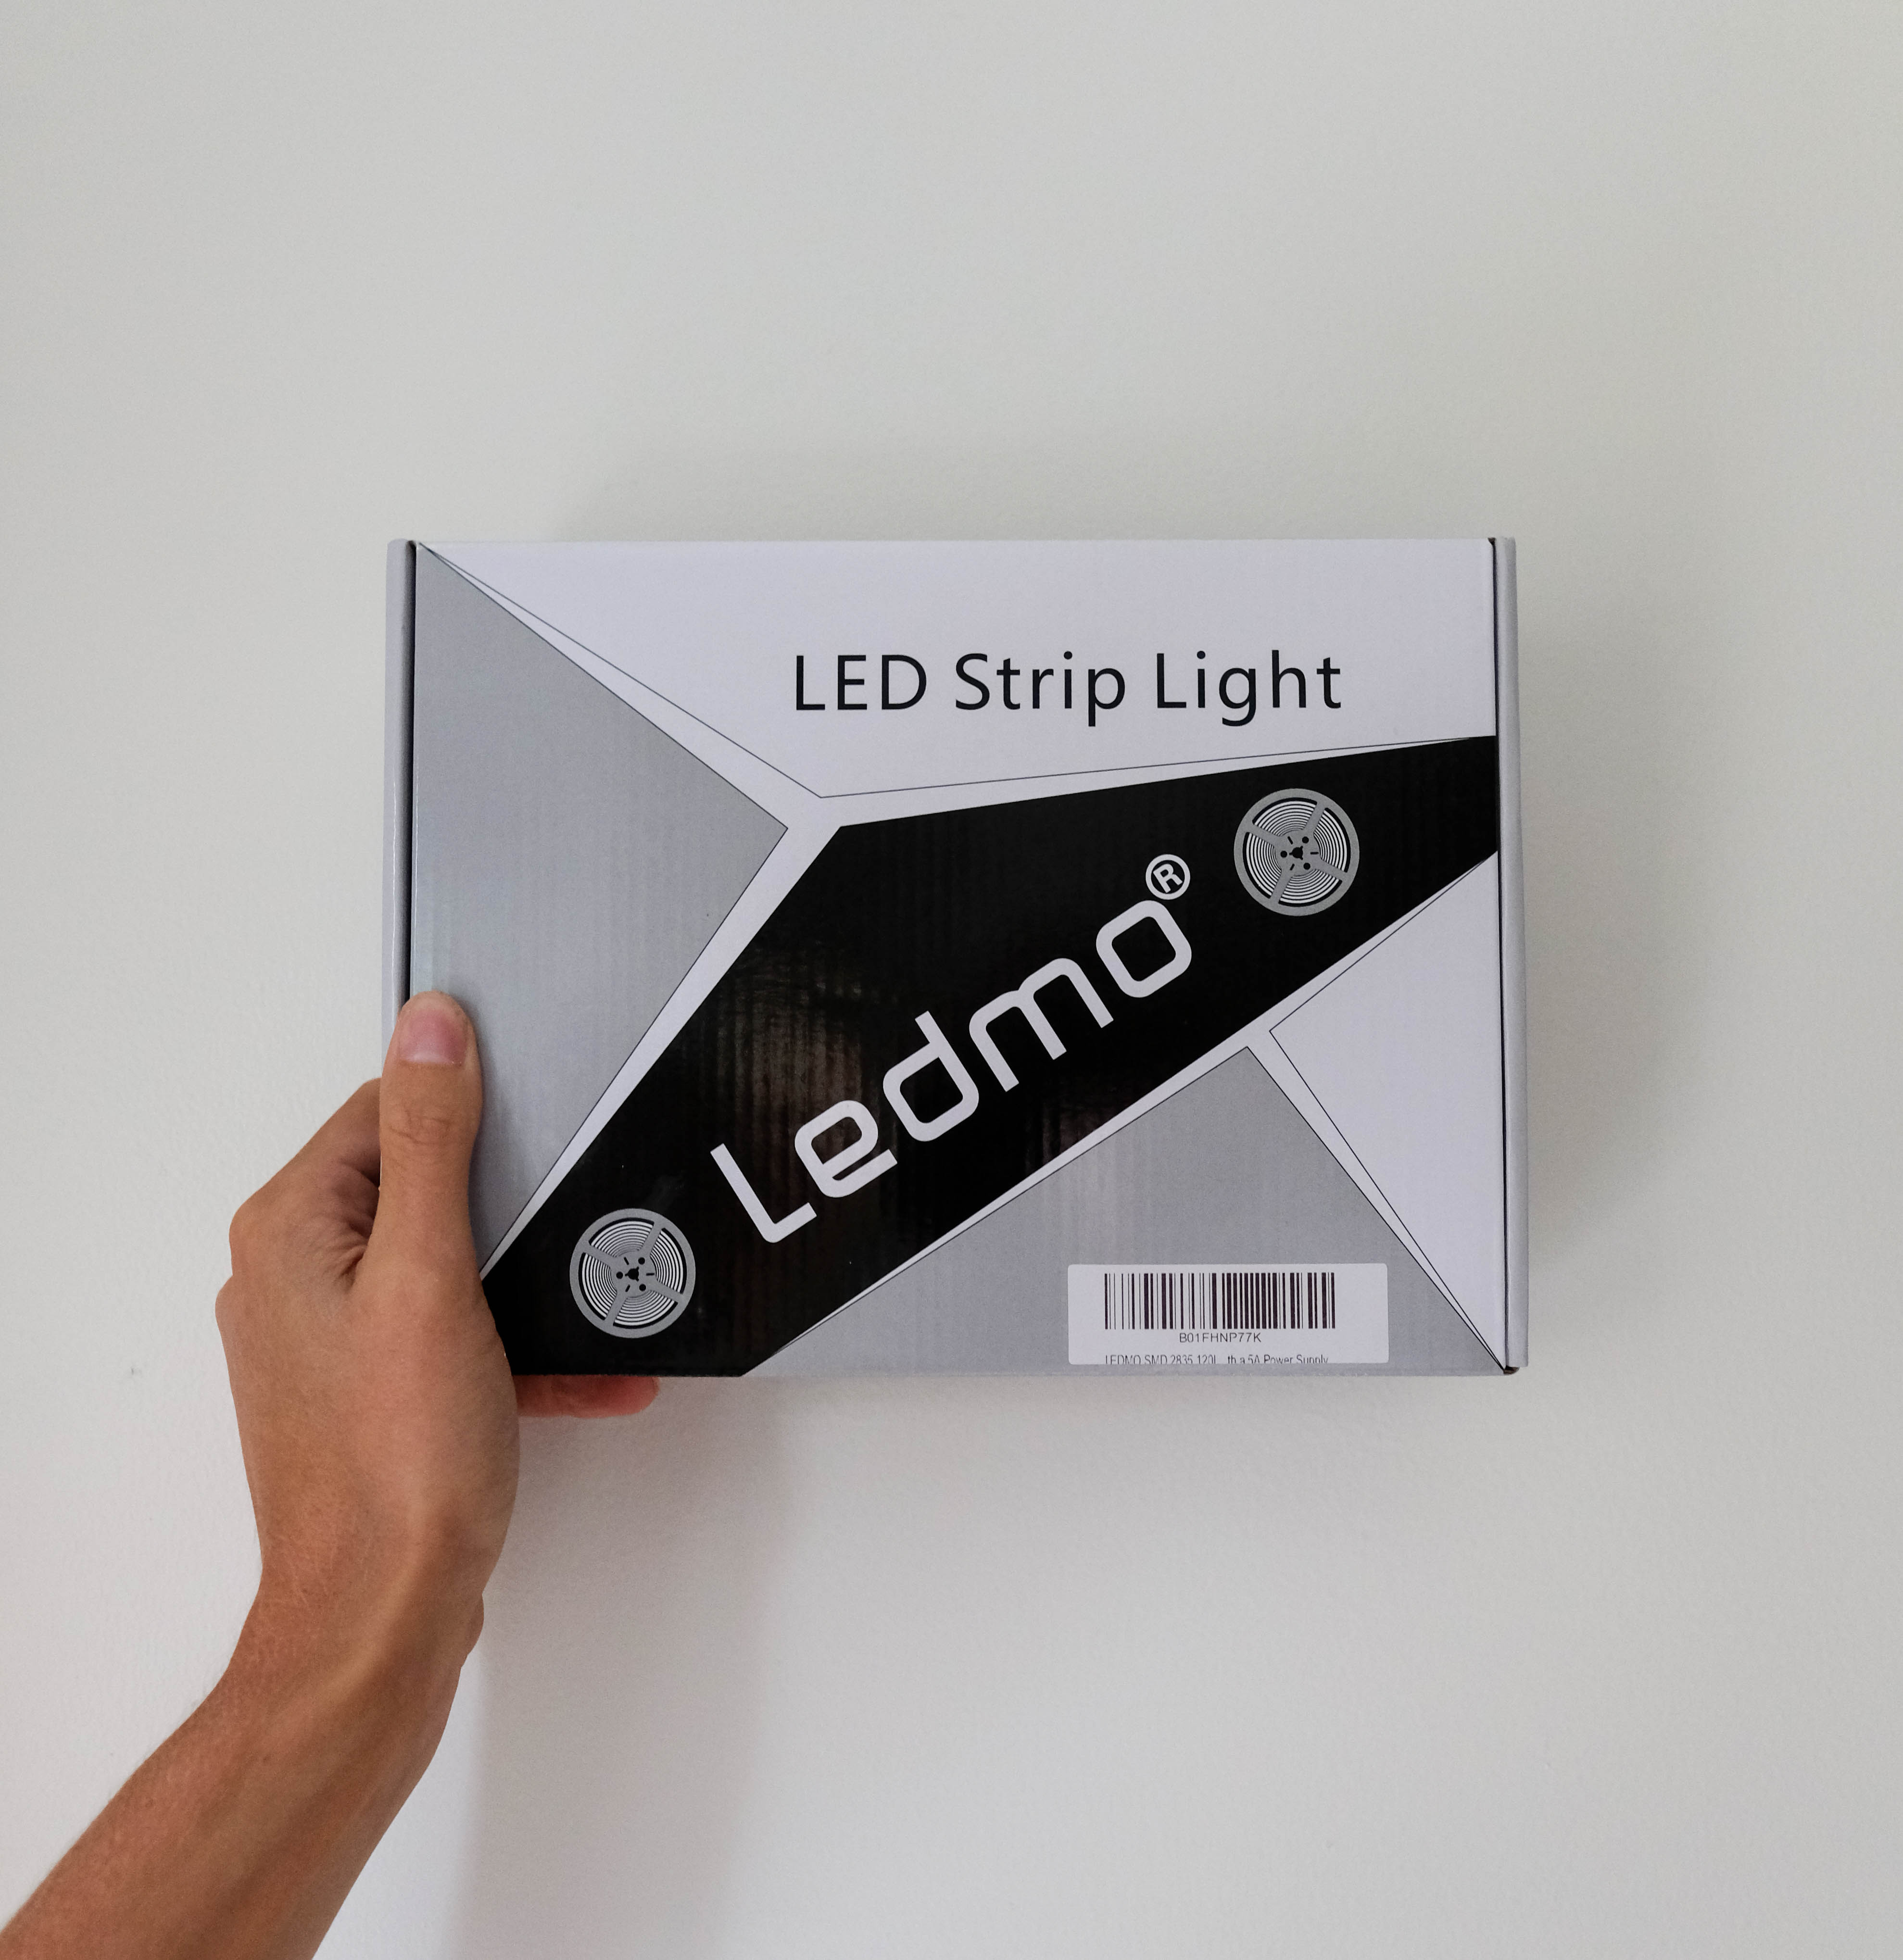 Ledmo Led Strip Light for adding over cabinet lighting